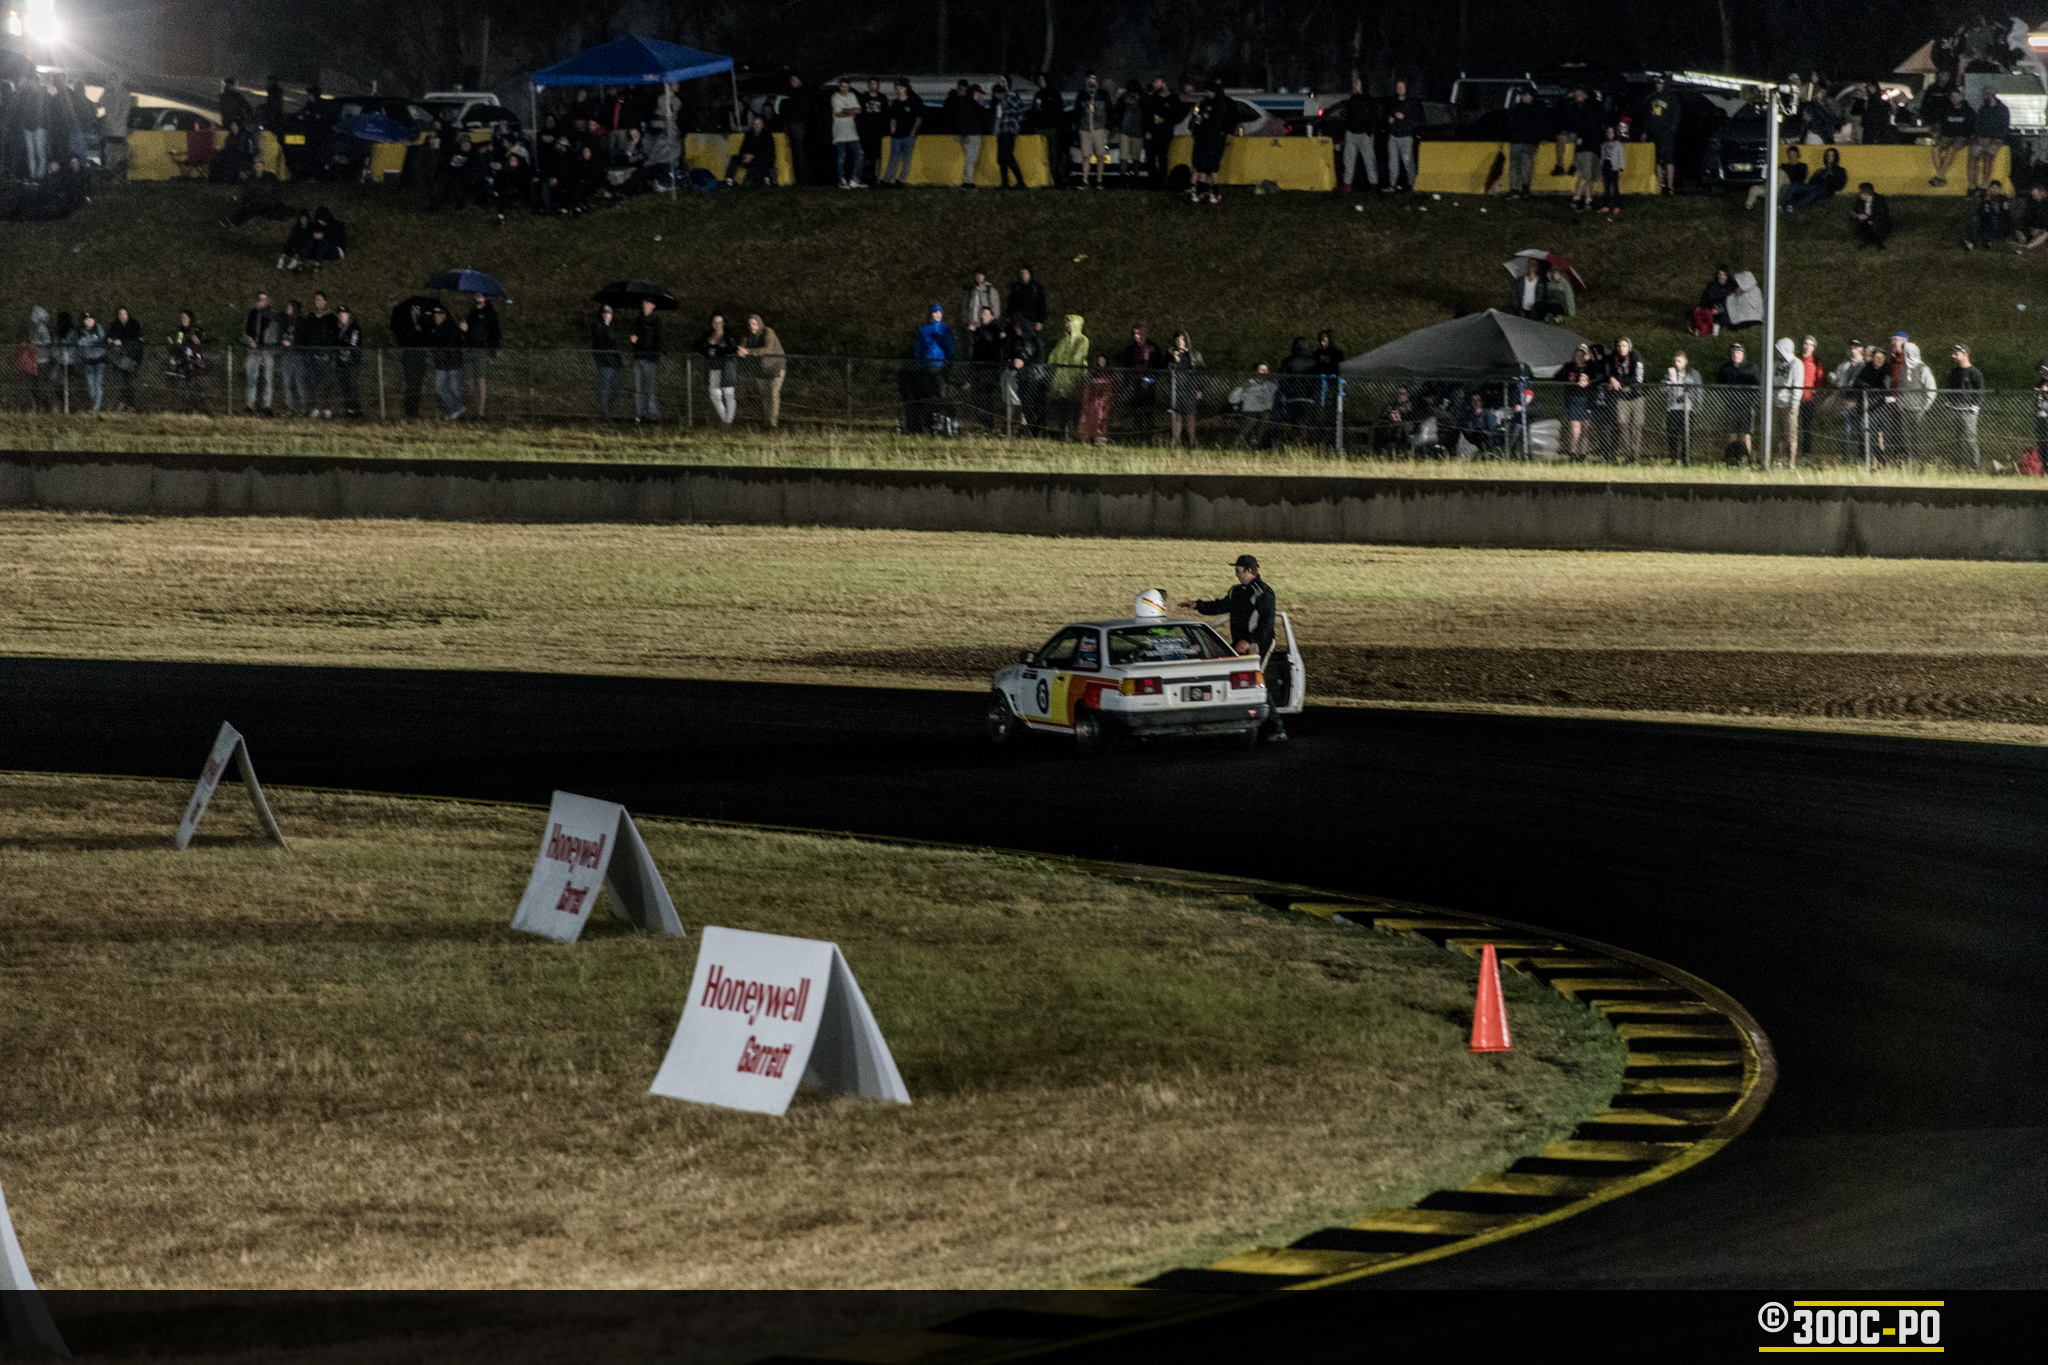 2017-10-14 - WTAC 2017 Day 02 273